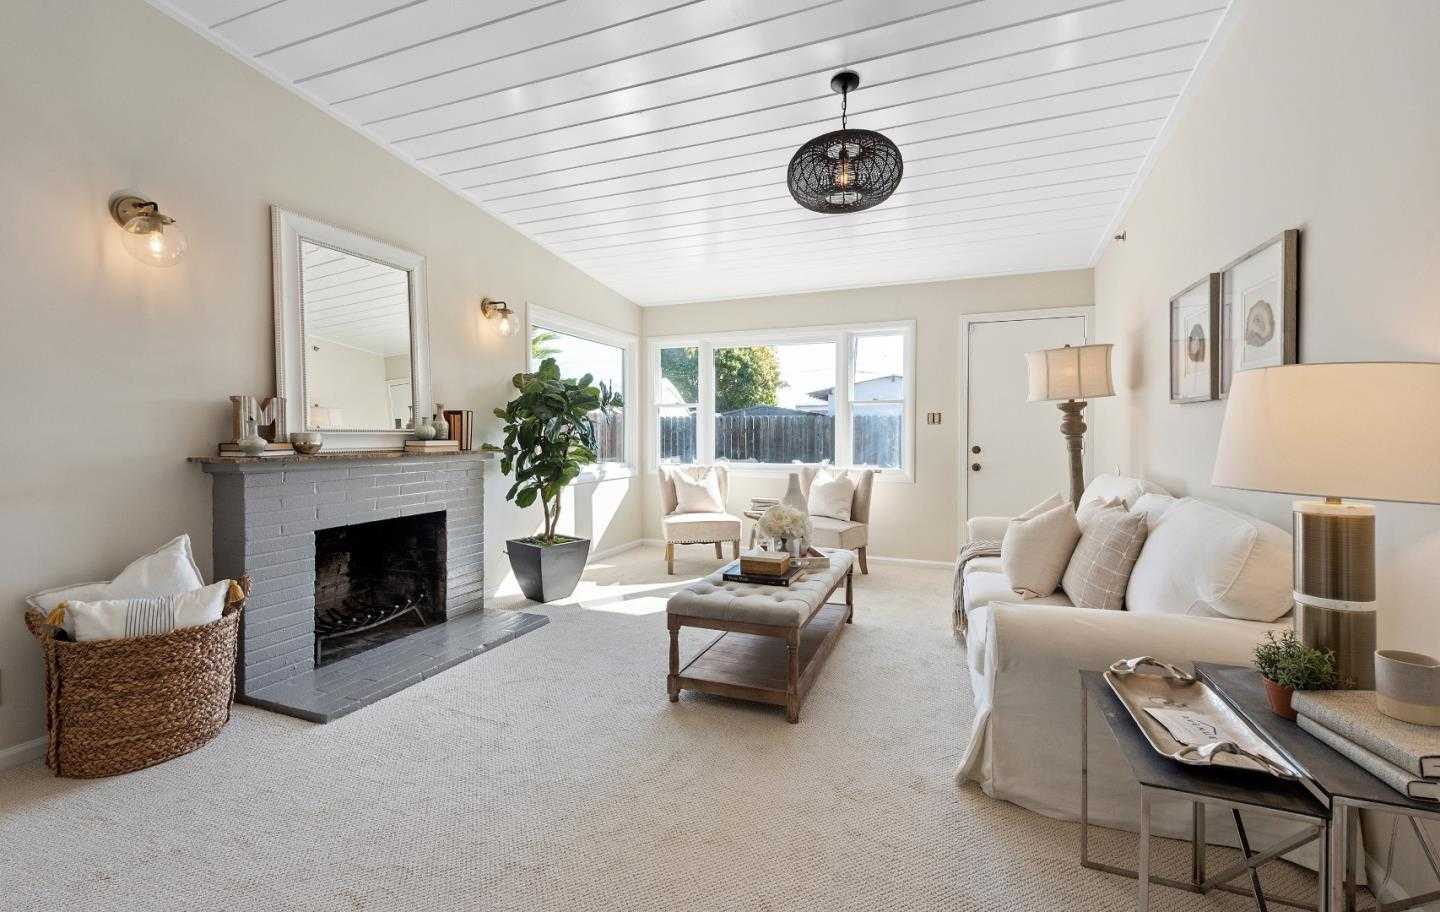 $798,000 - 3Br/1Ba -  for Sale in East Palo Alto